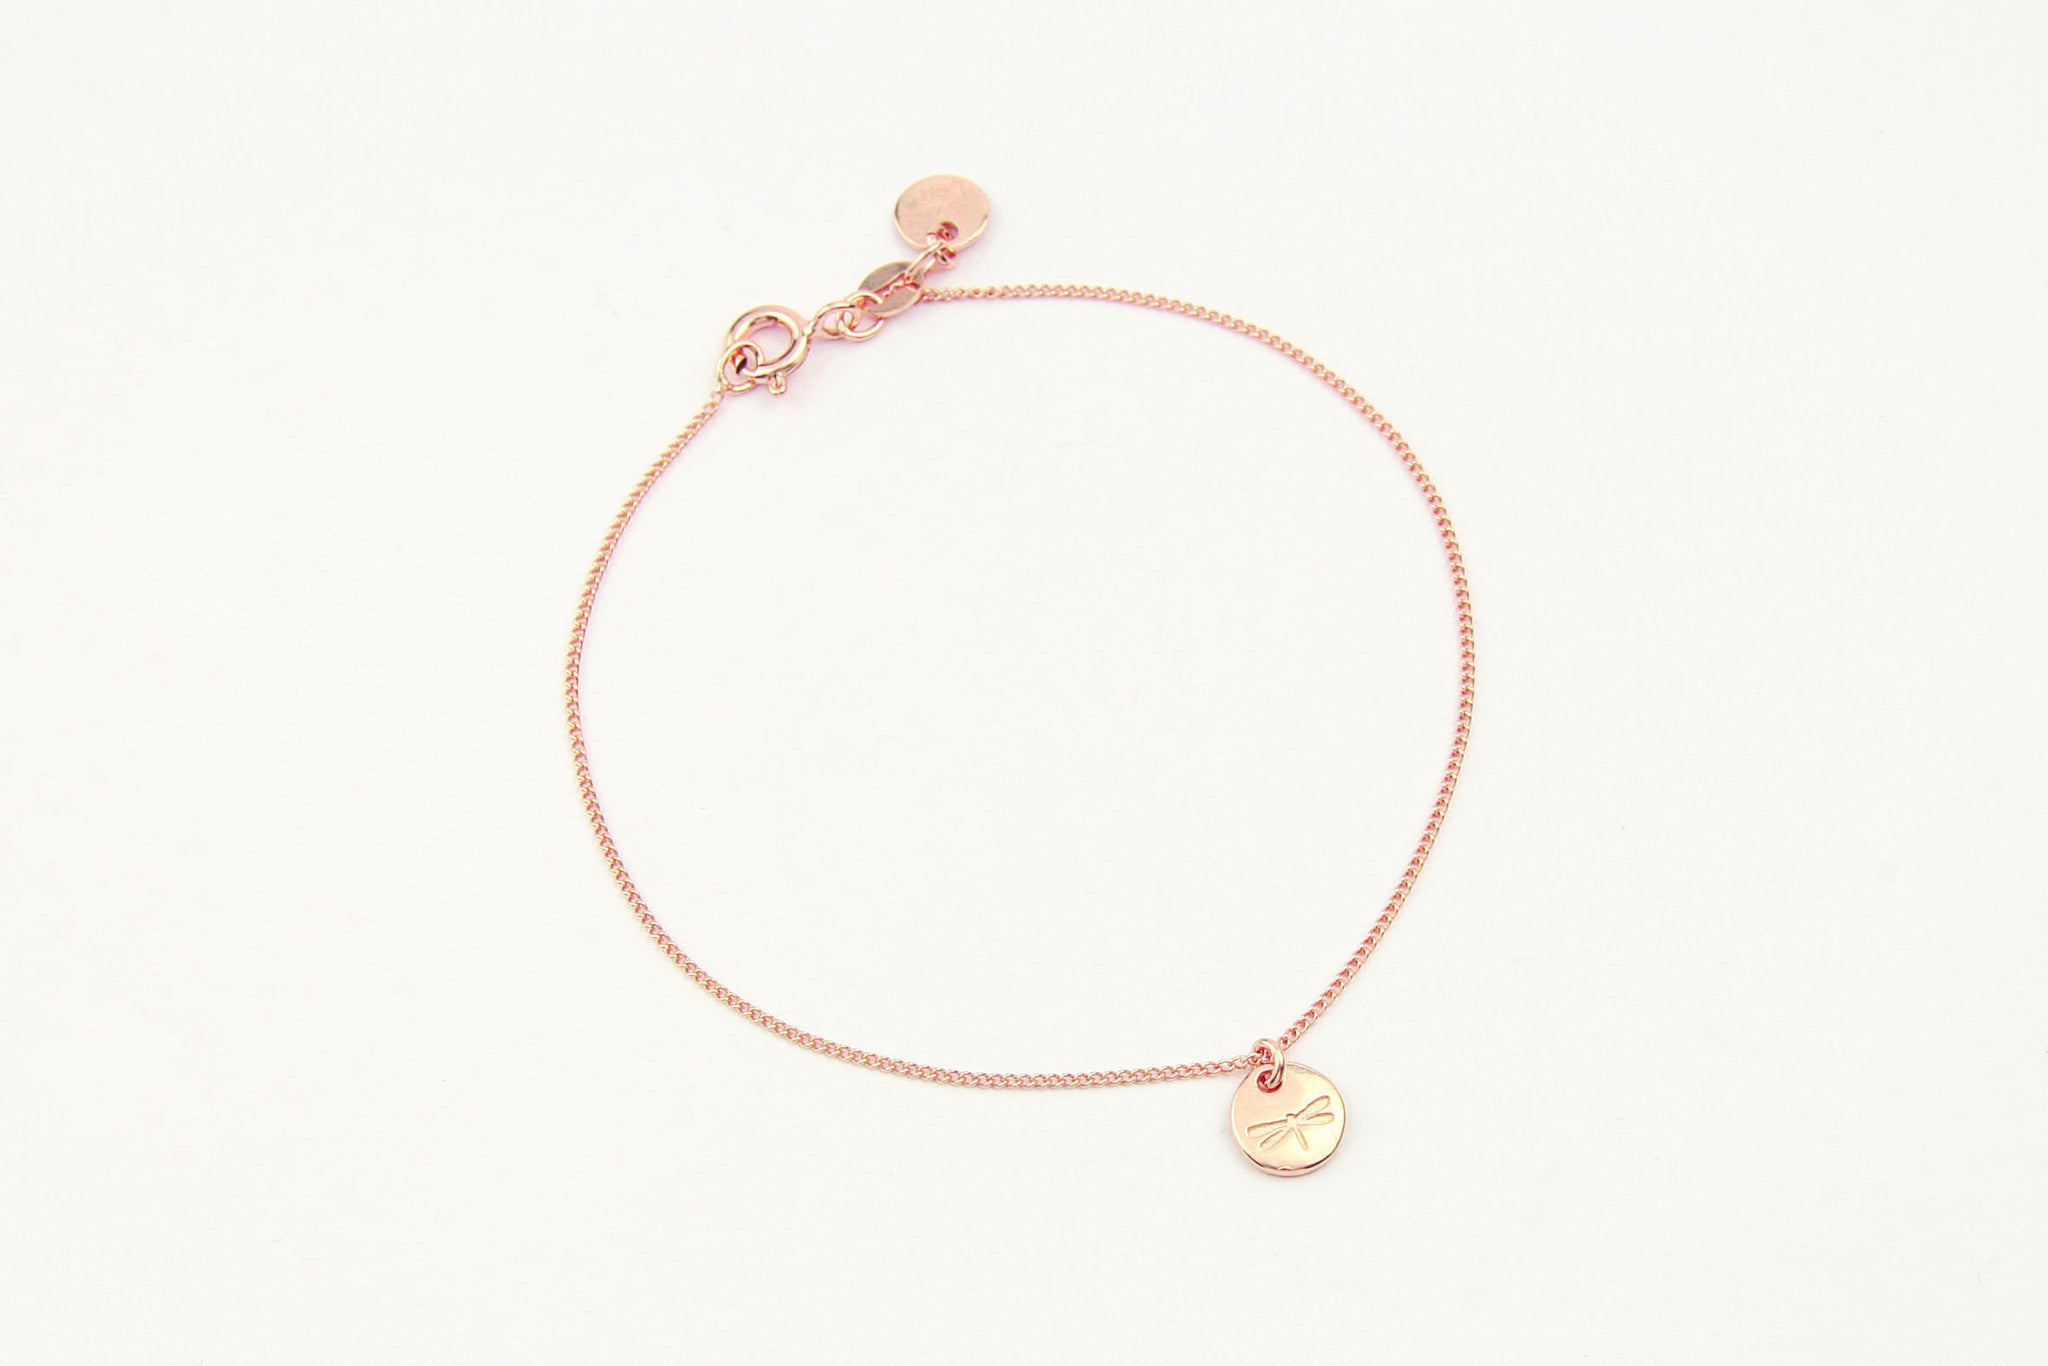 jewelberry armband bracelet dragonfly token rose gold plated sterling silver fine jewelry handmade with love fairtrade curb chain